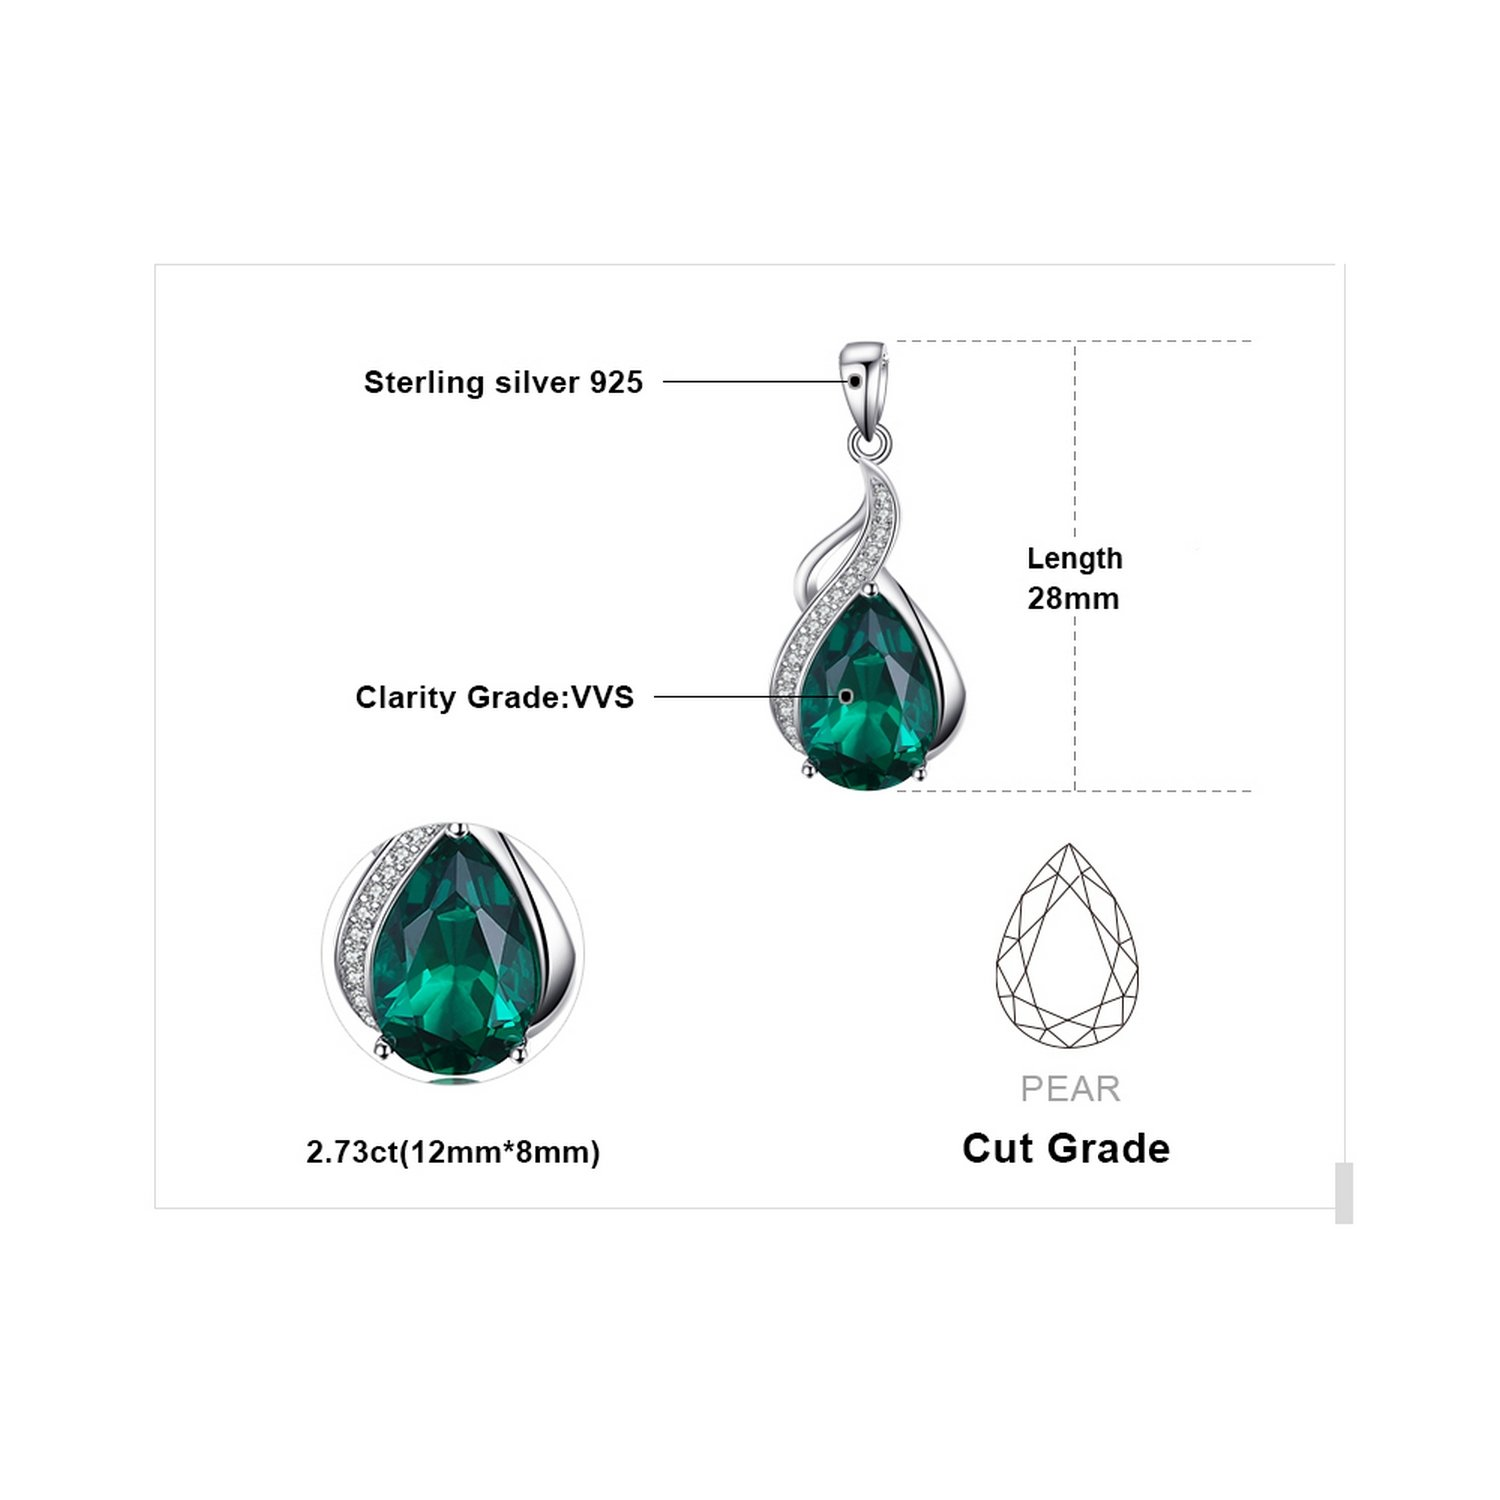 CS-DB Jewelry Silver Pear 2.8ct Created Emerald Chain Charm Pendants Necklaces